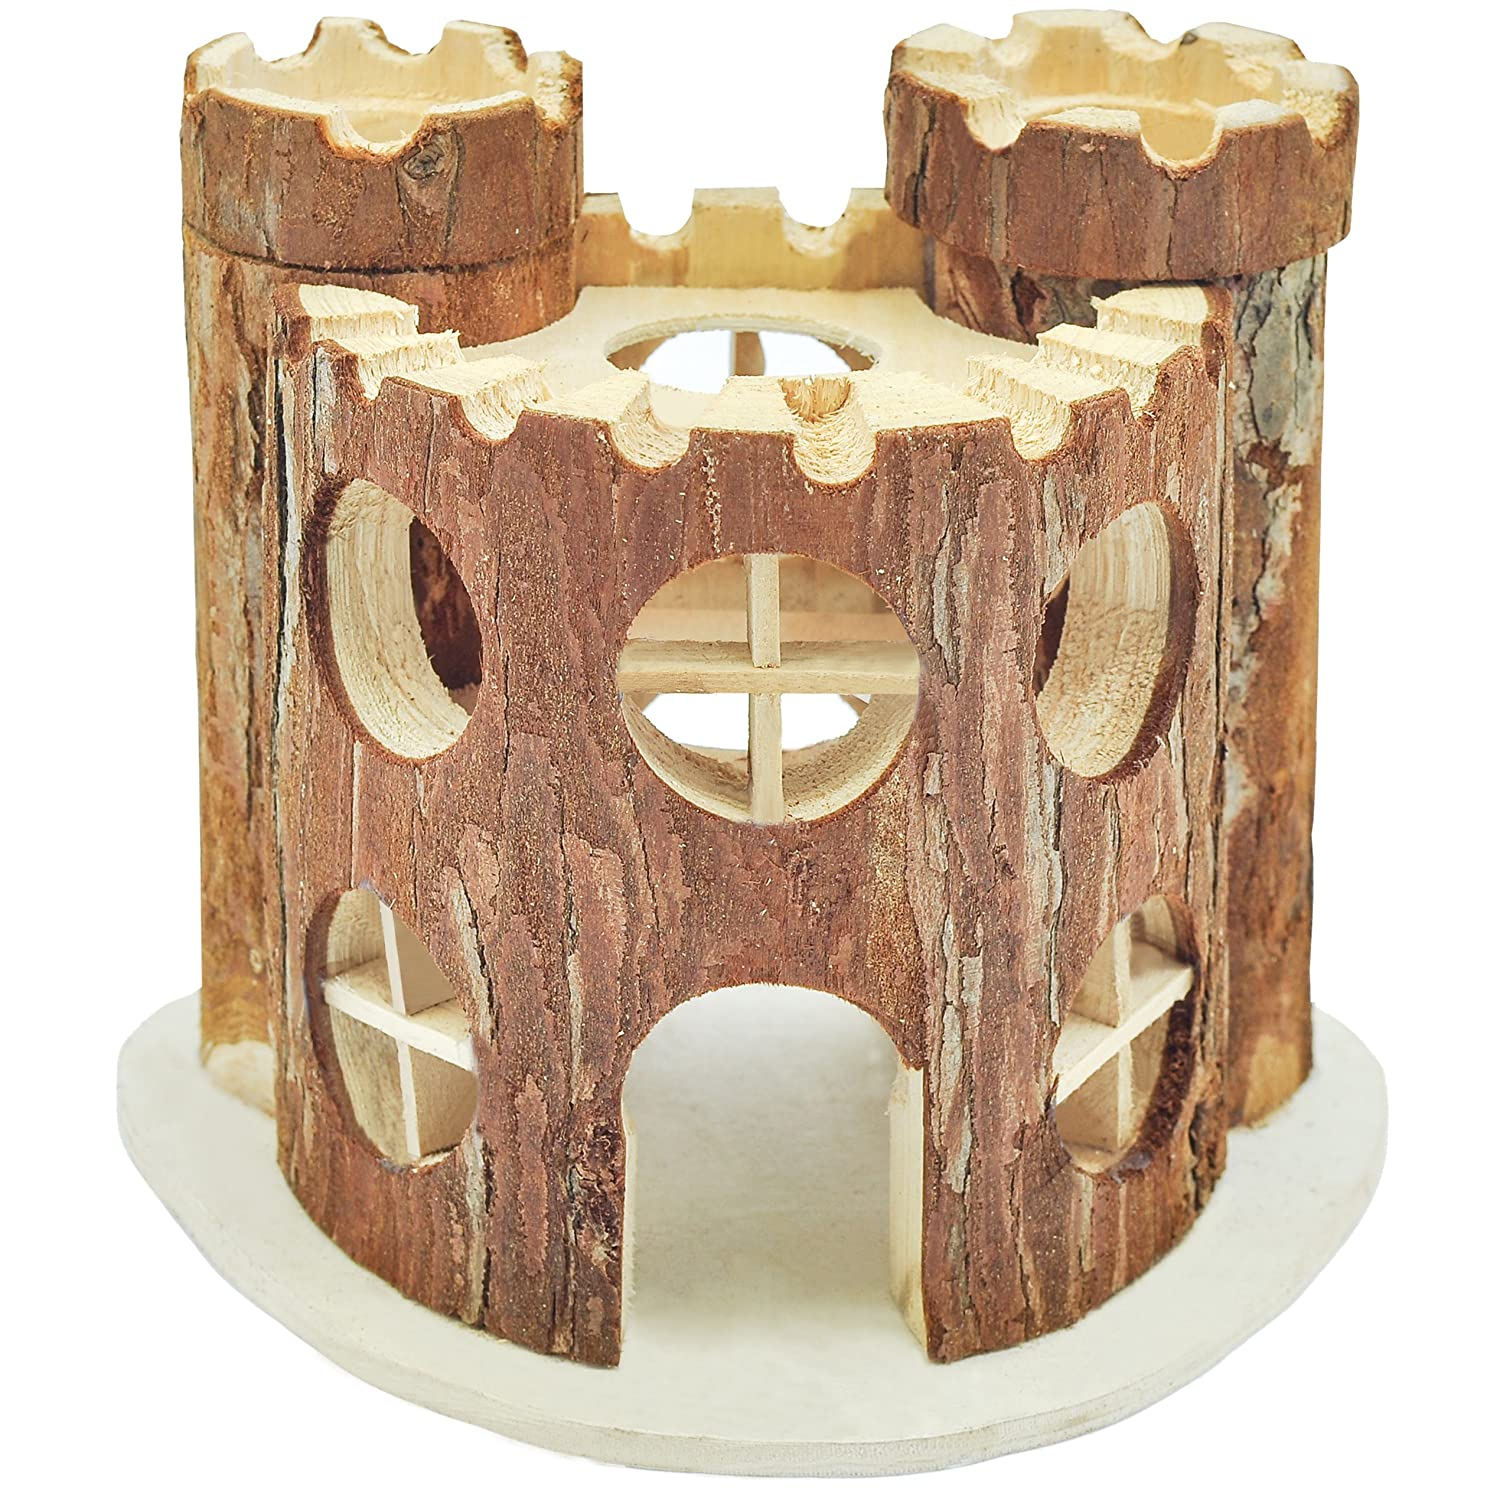 NiteangeL® Natural Living Wooden Castle, Small Animal Playground, 2-Level House